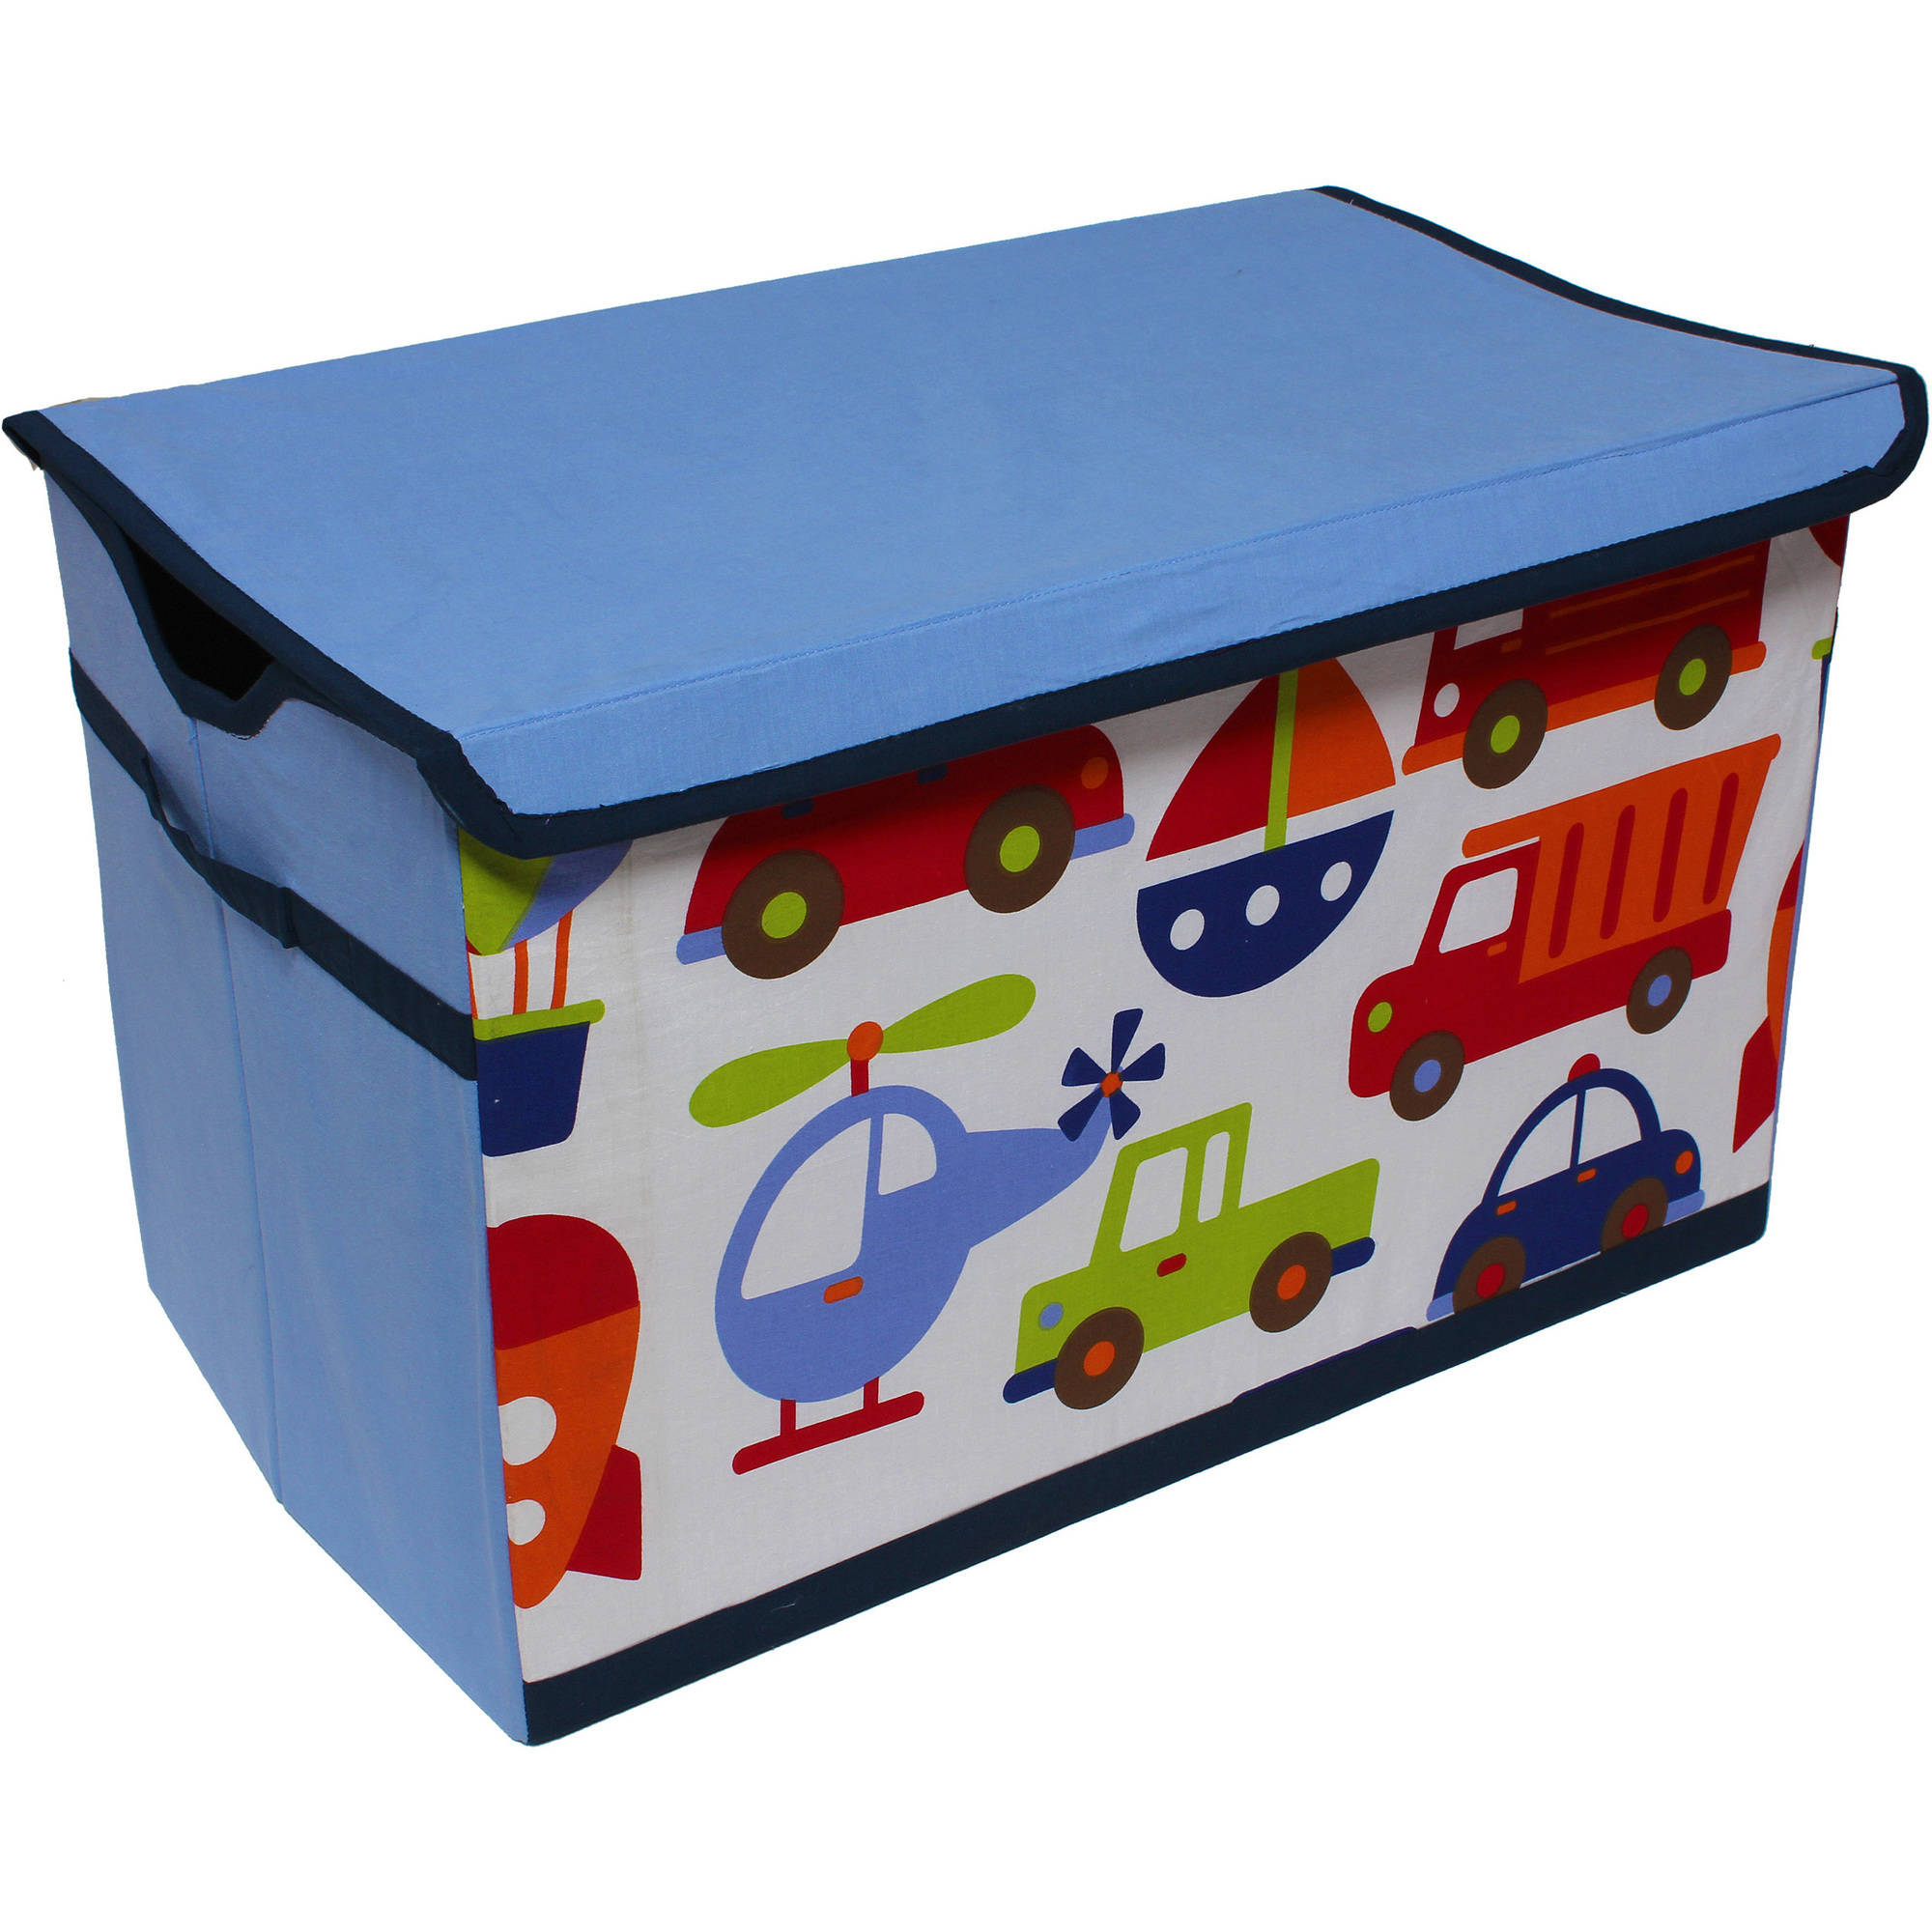 Bacati - Transportation Cotton Percale Fabric covered Storage, Toy Chest, 24.5 L x 15 W x 14 H inches